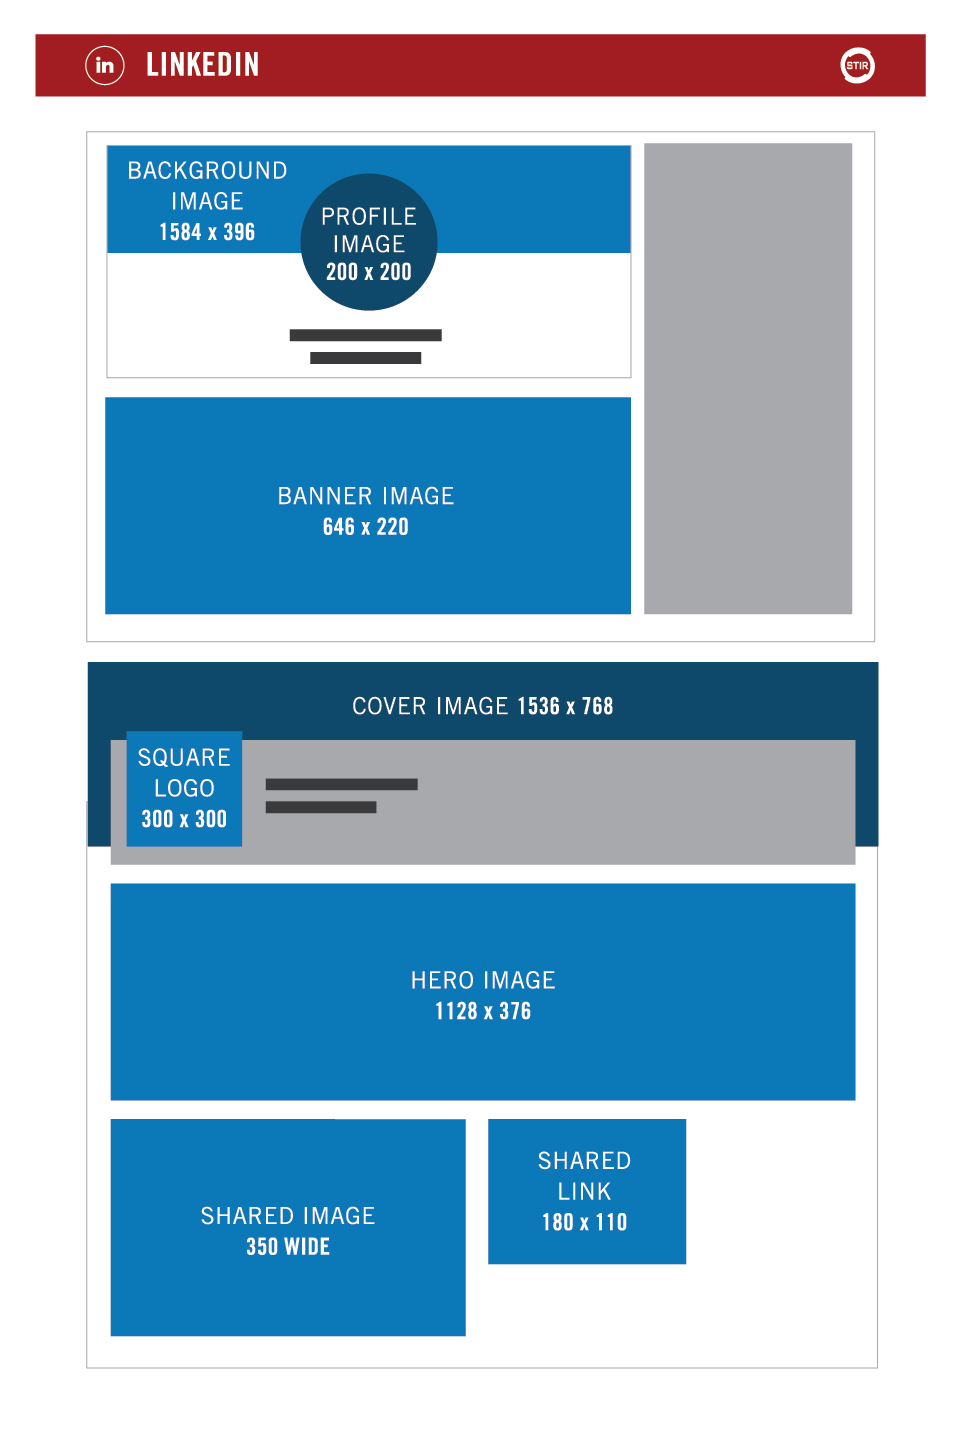 LinkedIn Optimized Image sizes